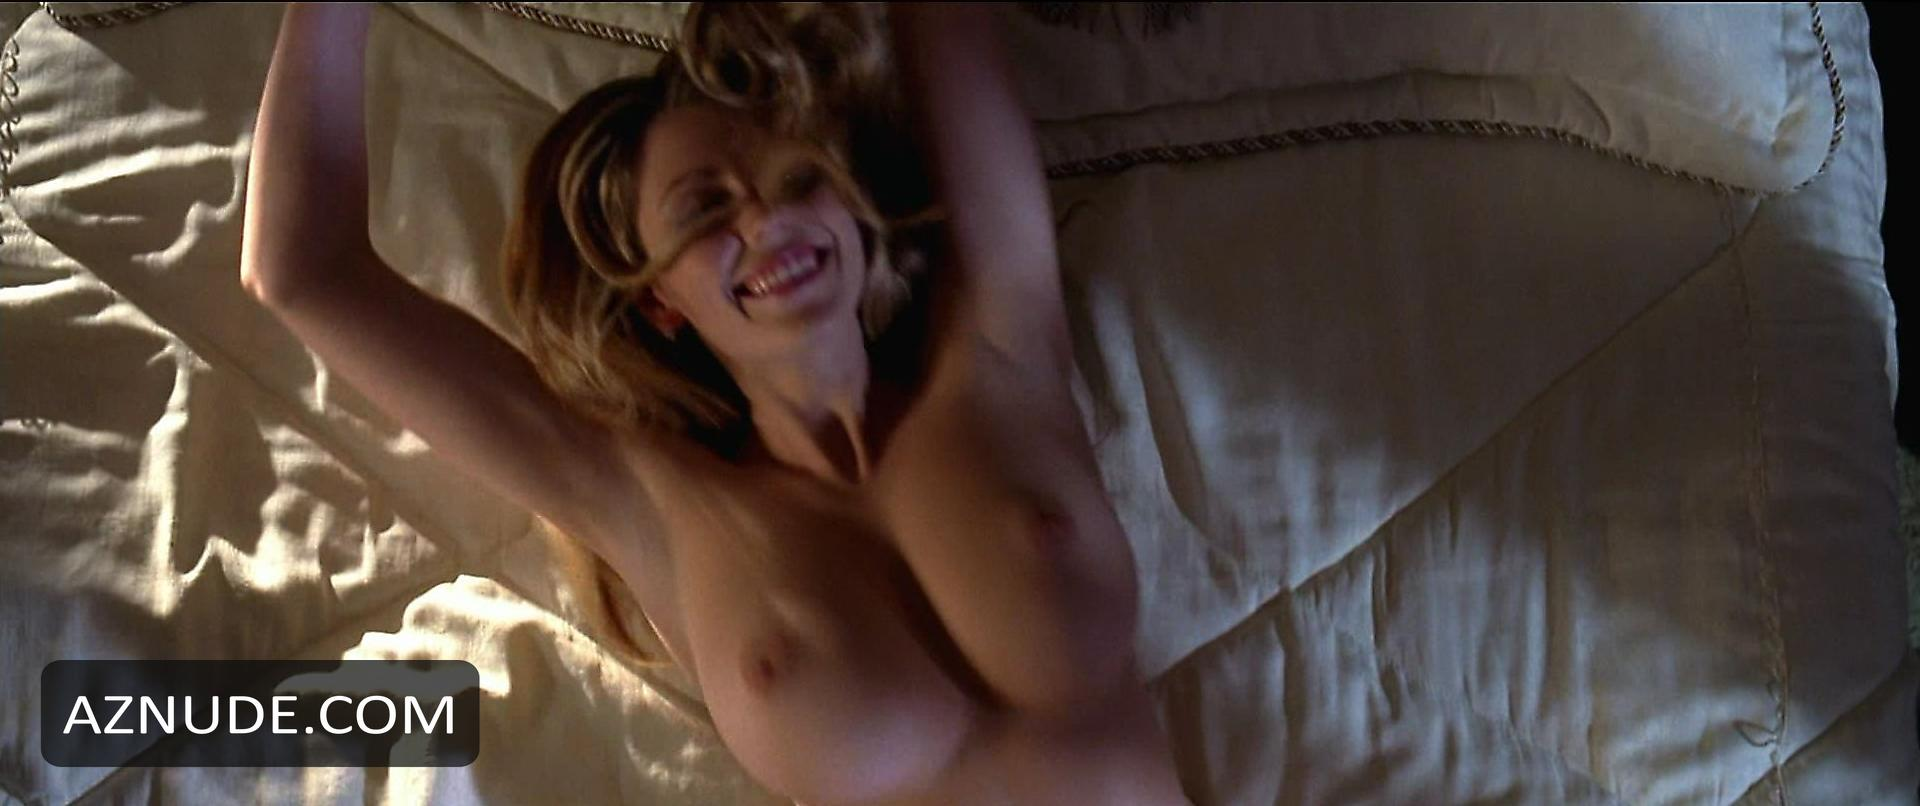 wedding crashers nude photos